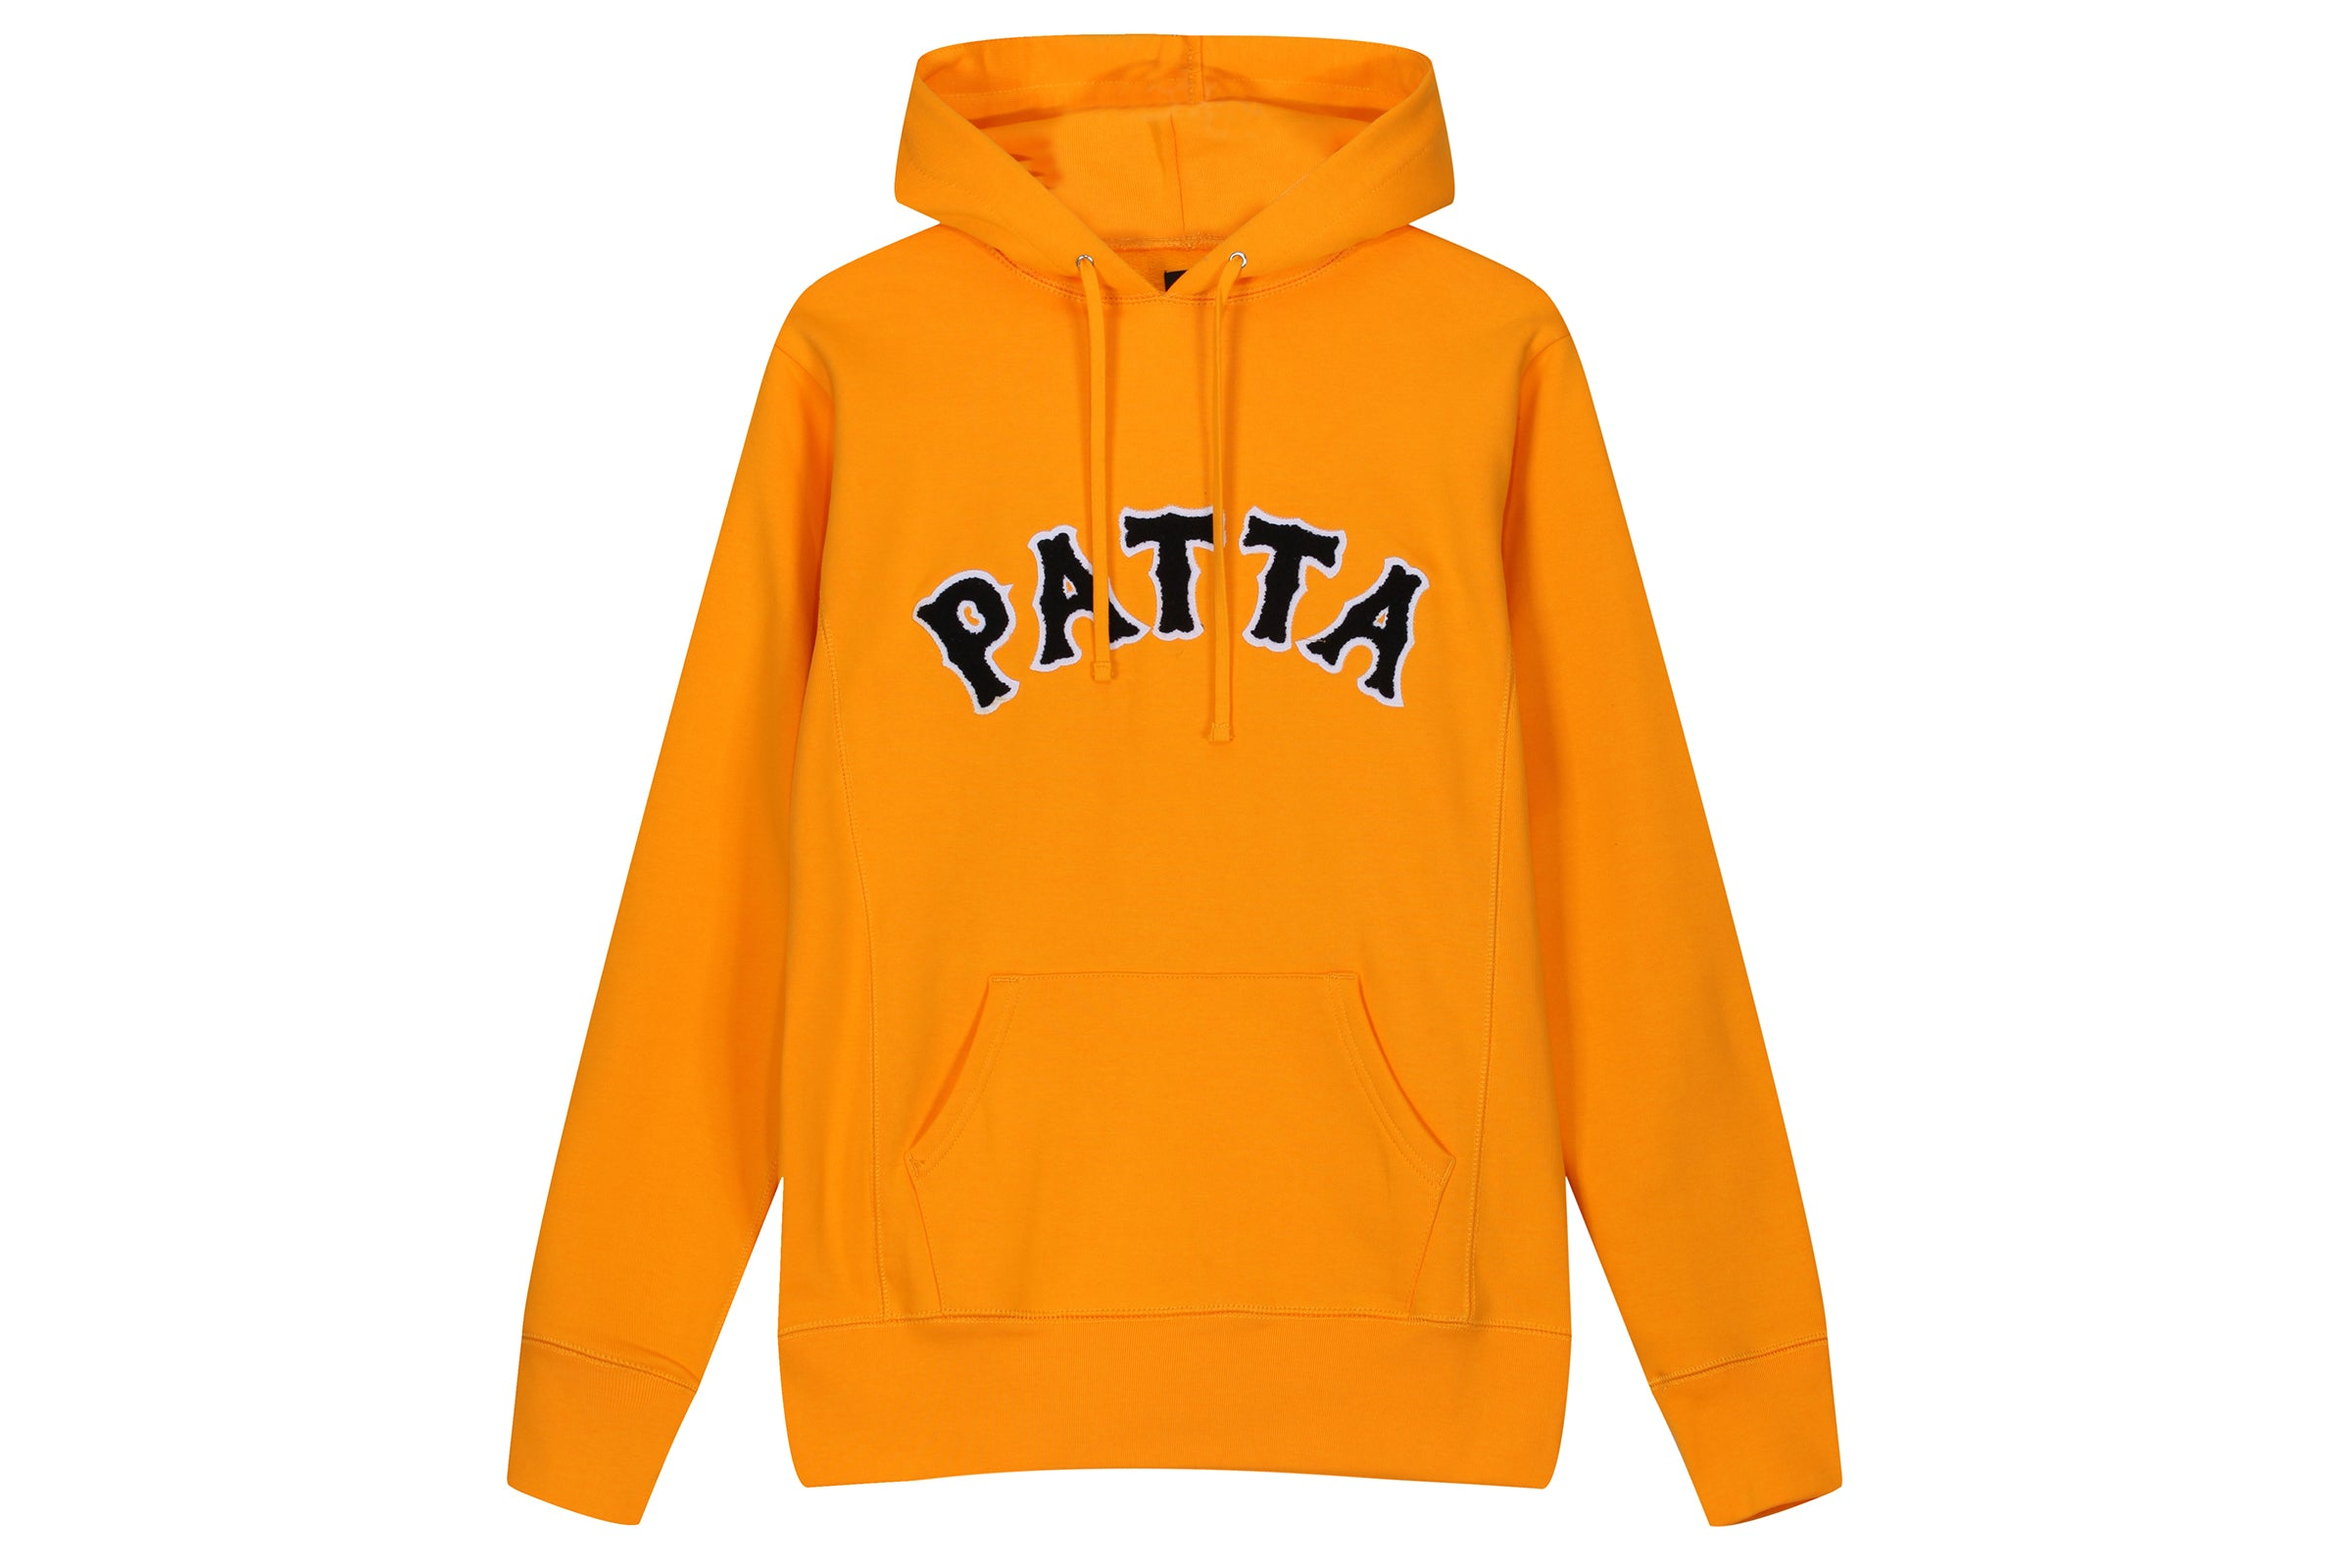 Patta Biker Logo Hooded Sweatshirt